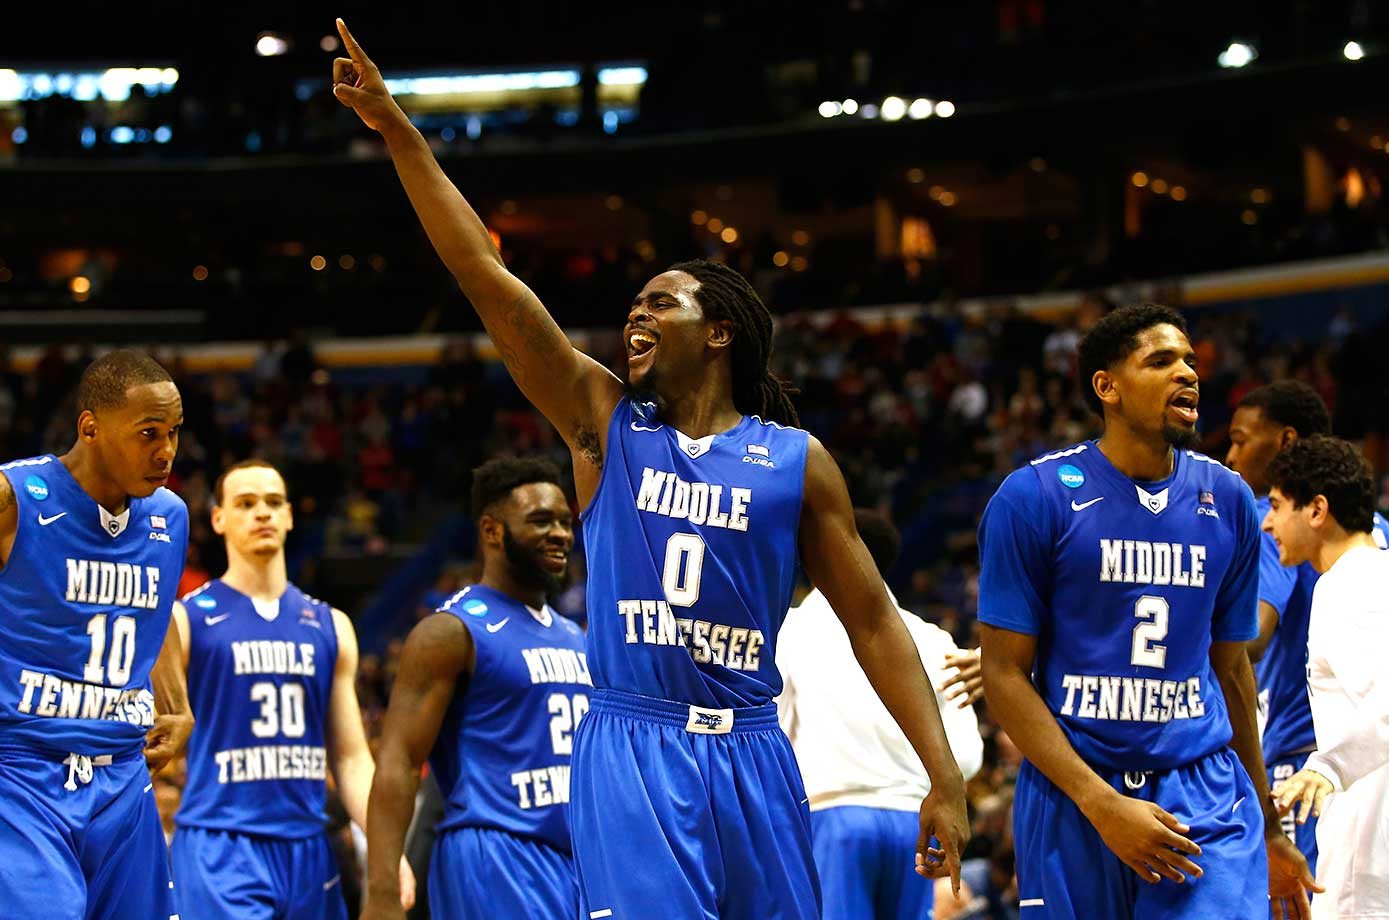 Middle Tennessee State players celebrate after pulling off one of the biggest upsets in tournament history.